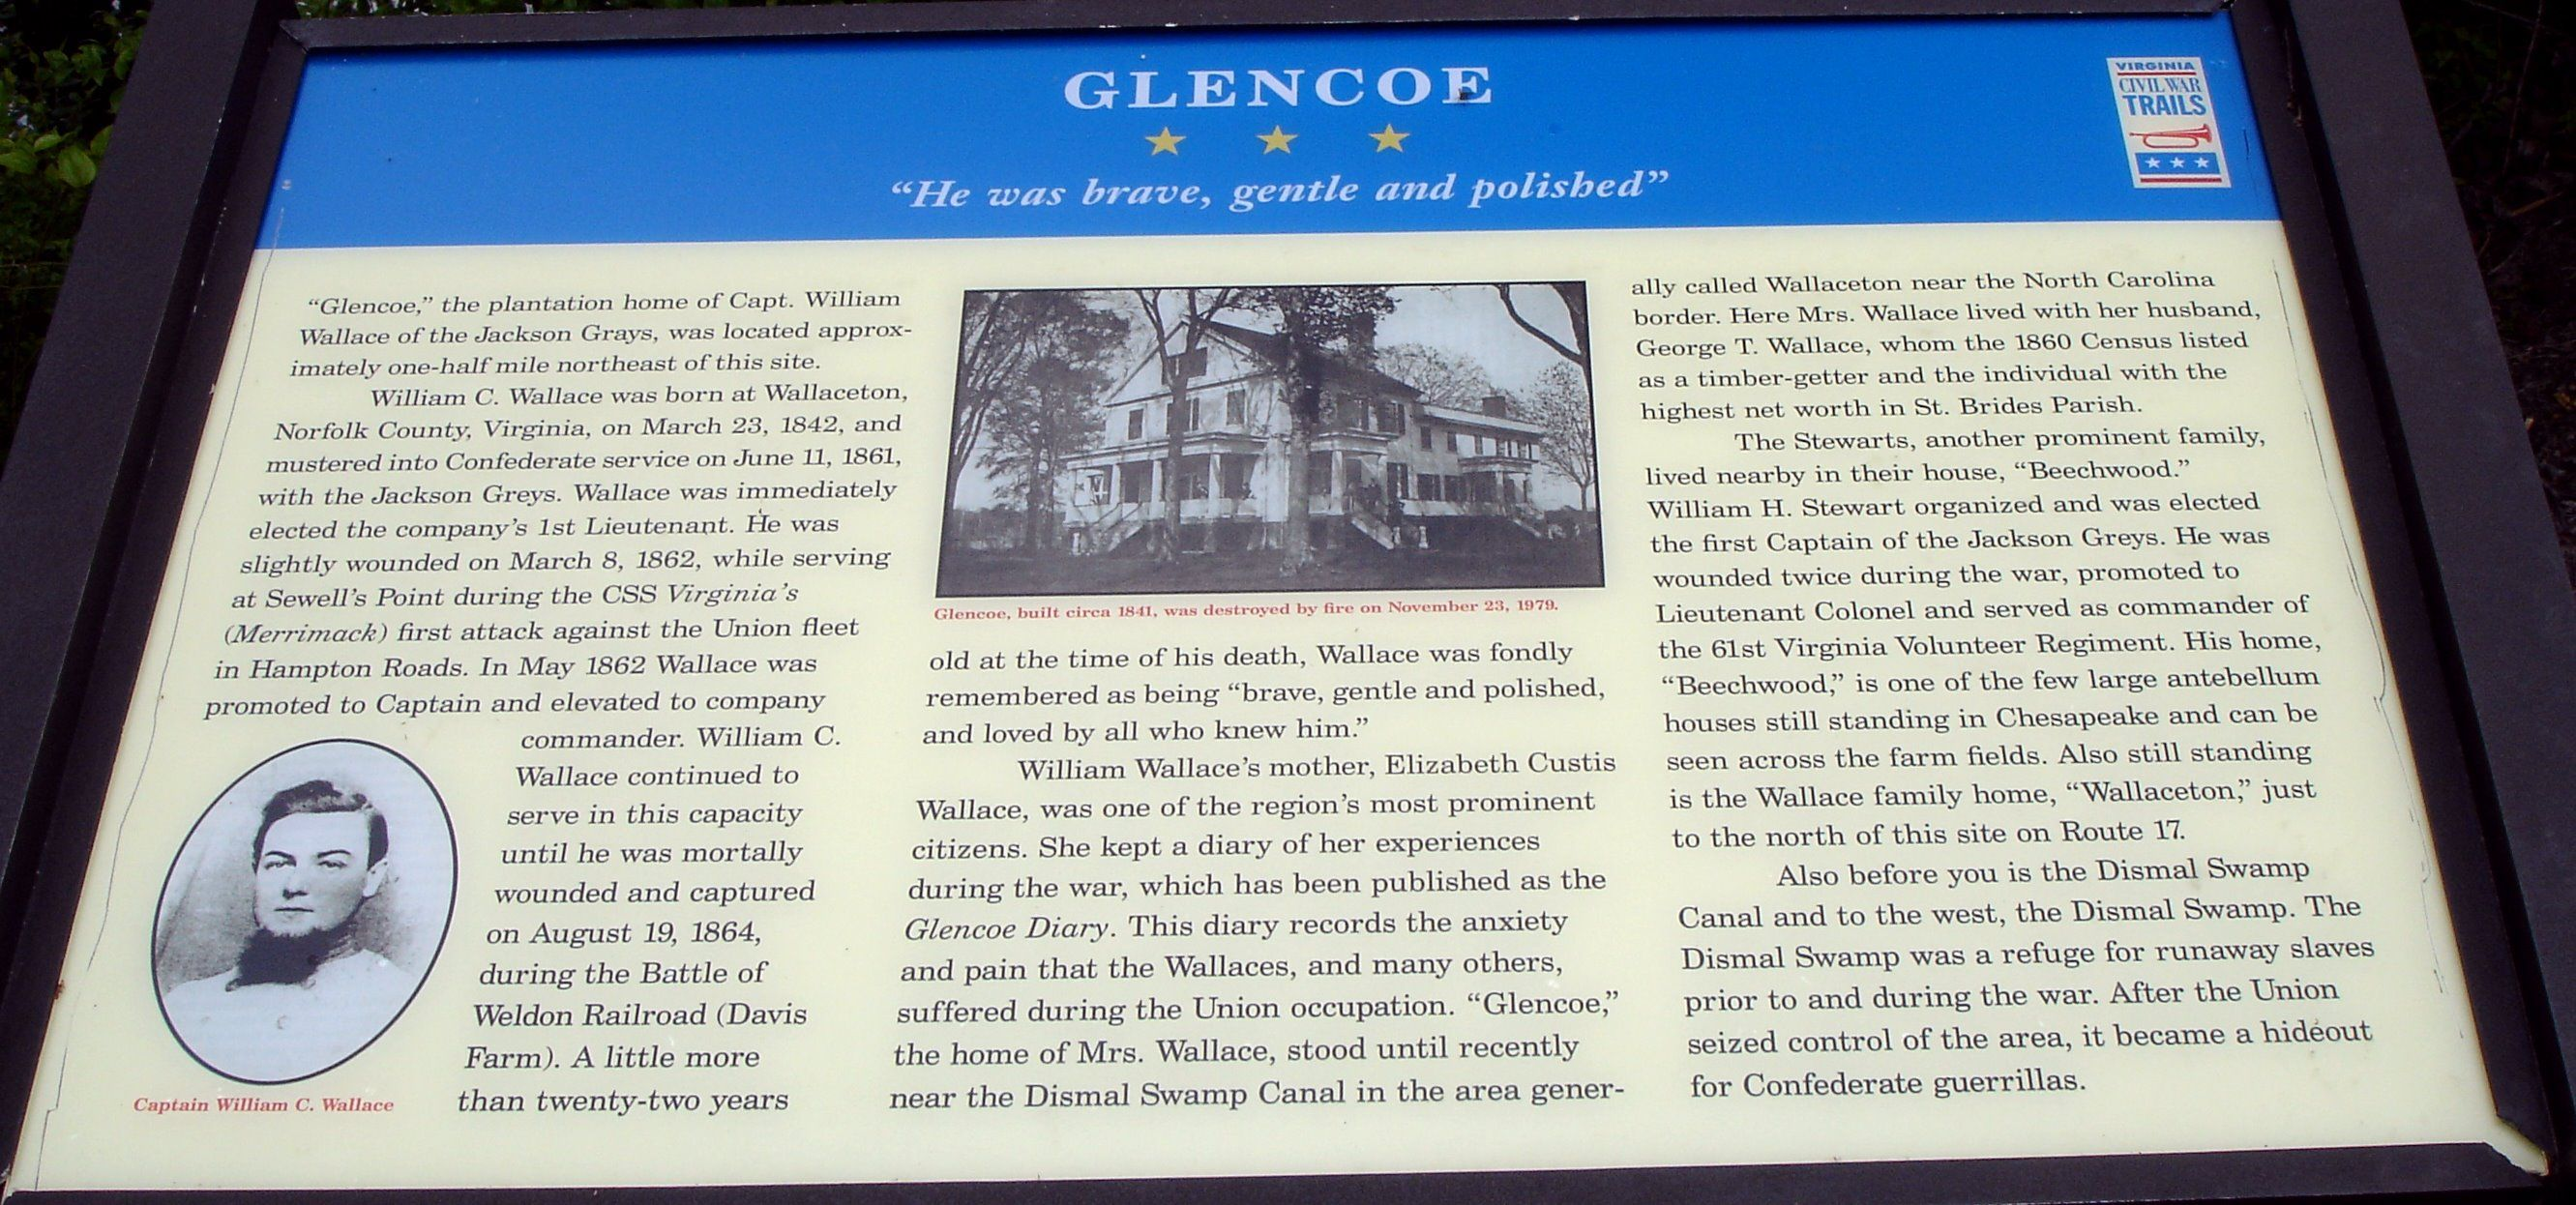 Glencoe Civil War Trails Marker